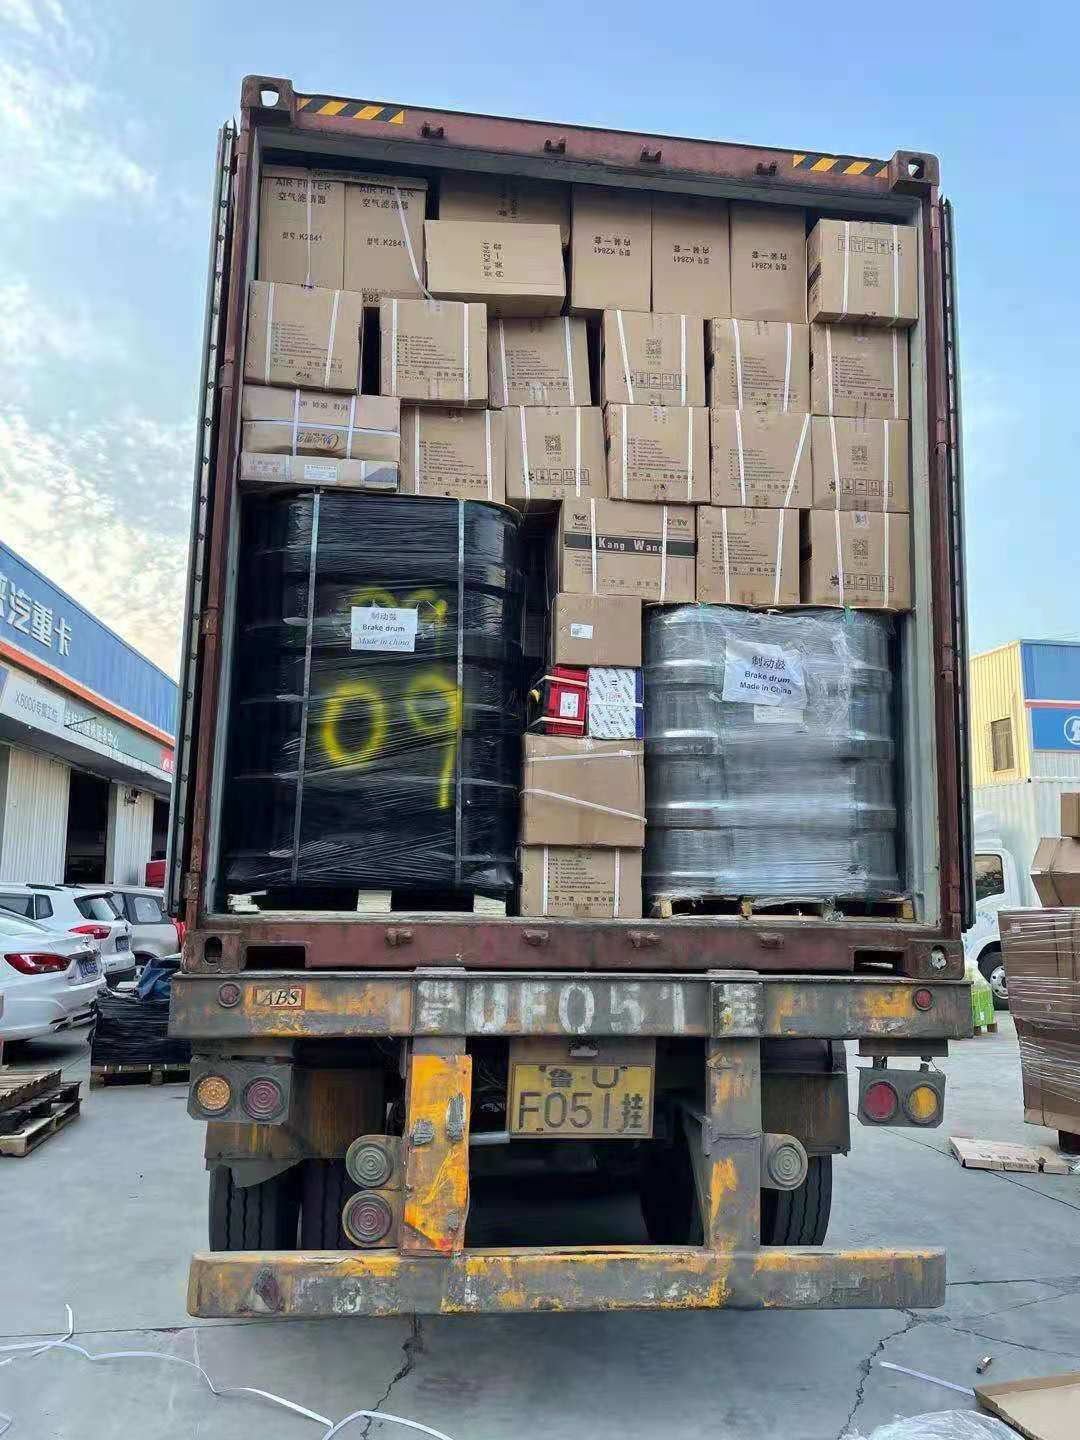 howo truck parts shipped in 40hq container in july. #2